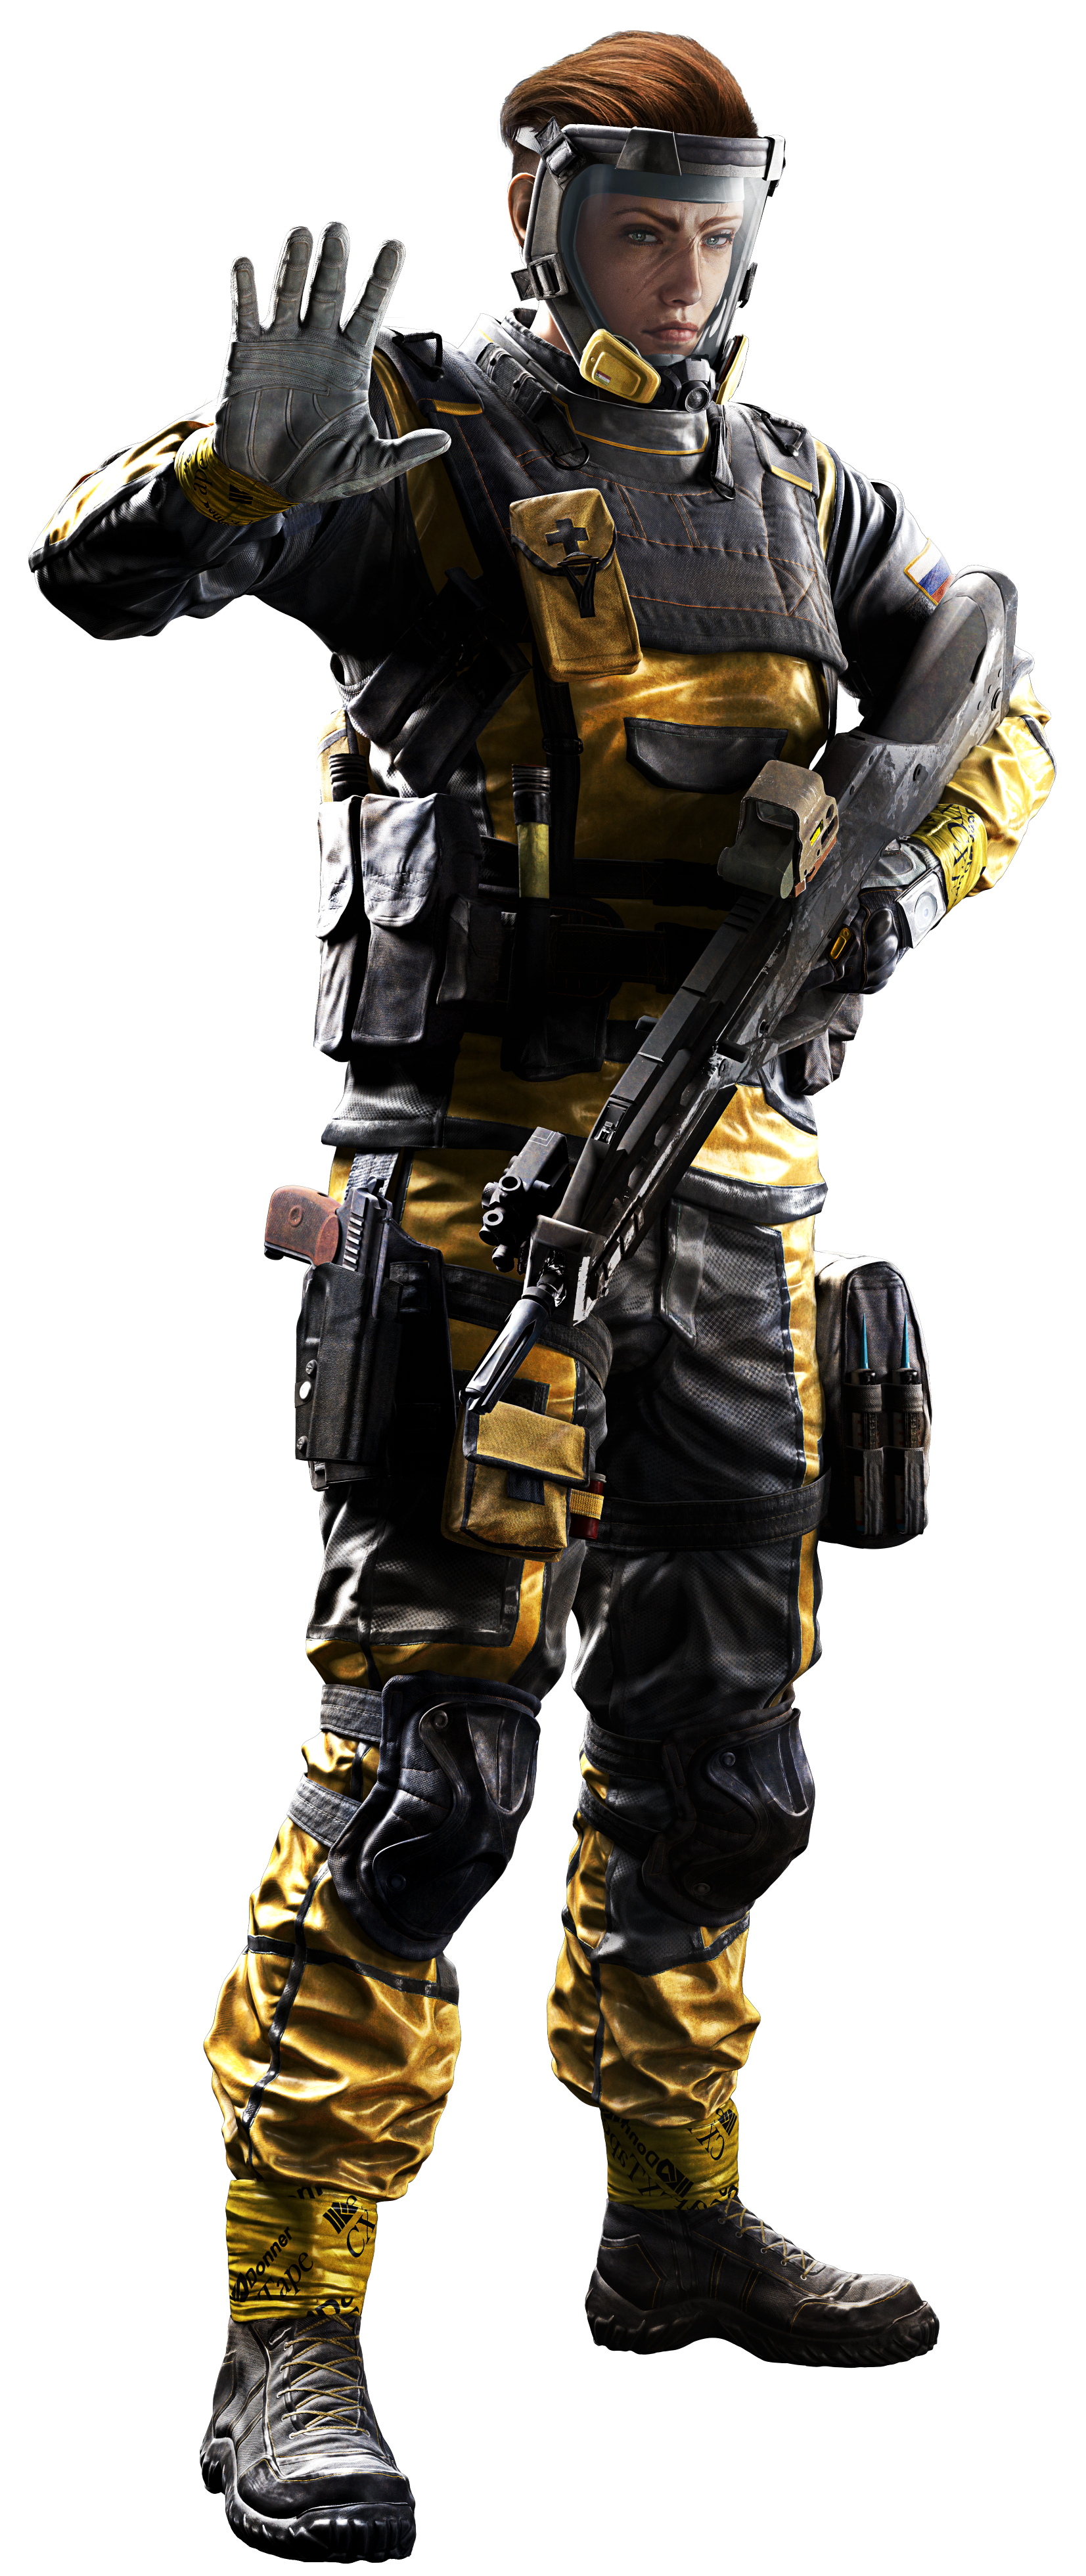 Finka | Rainbow Six Wiki | FANDOM powered by Wikia